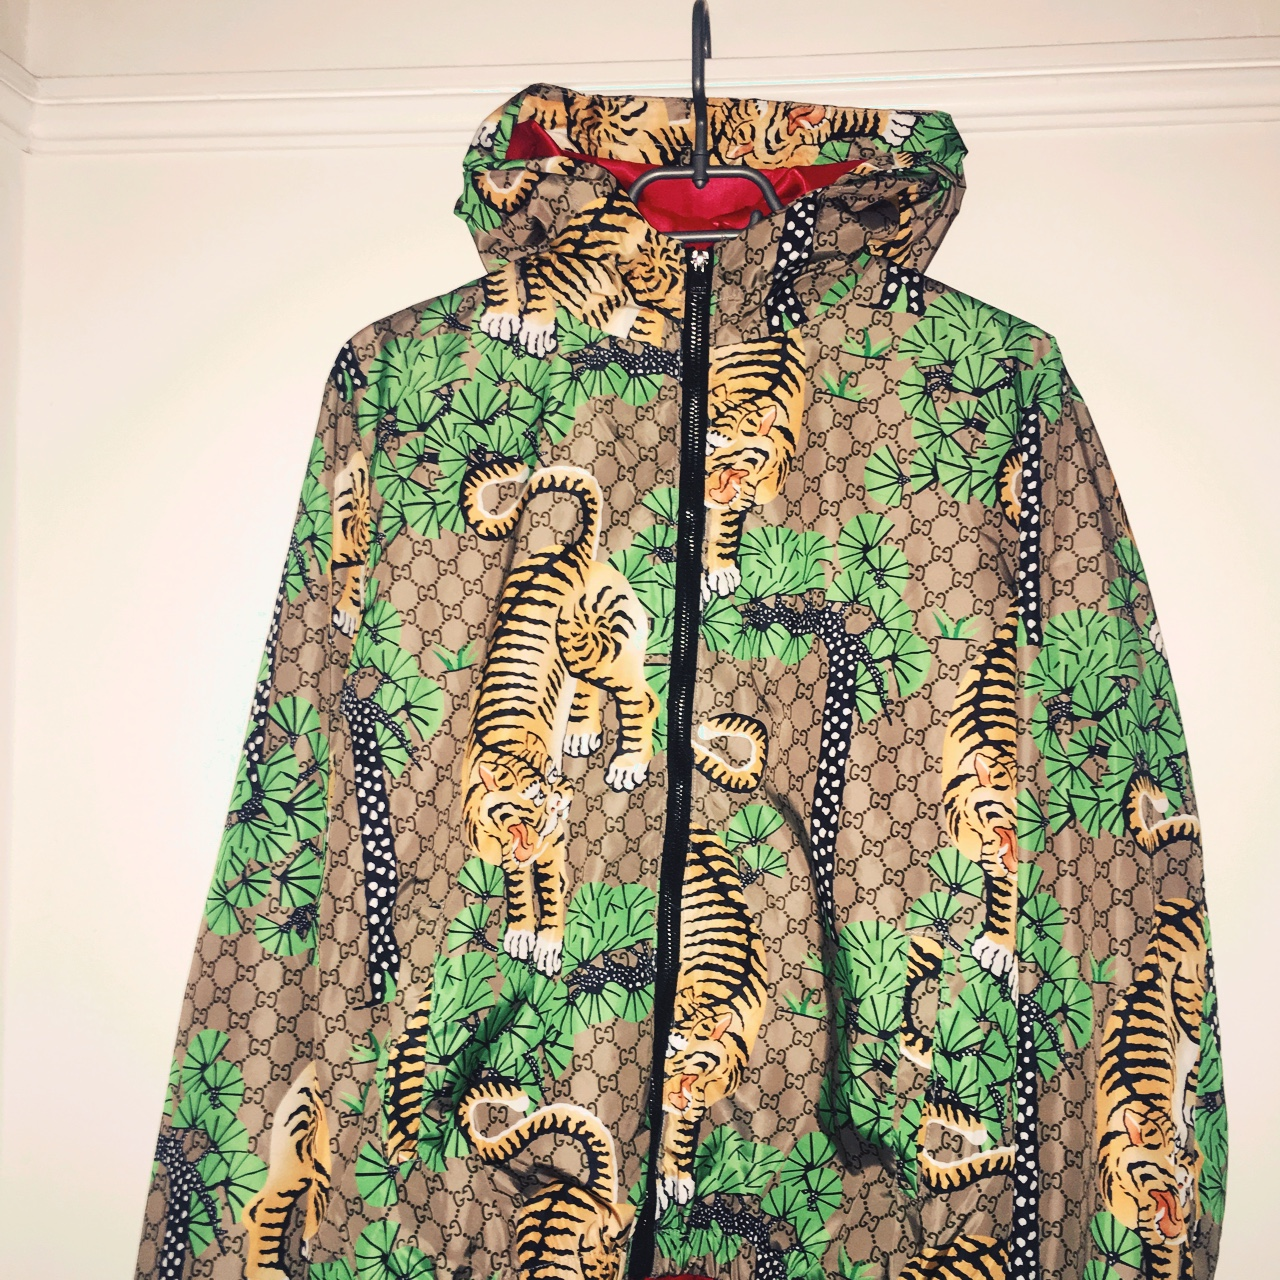 fc0a5b6e4 haydnclarke1997. London, UK. Men's Gucci Bengal Tiger Jacket ...